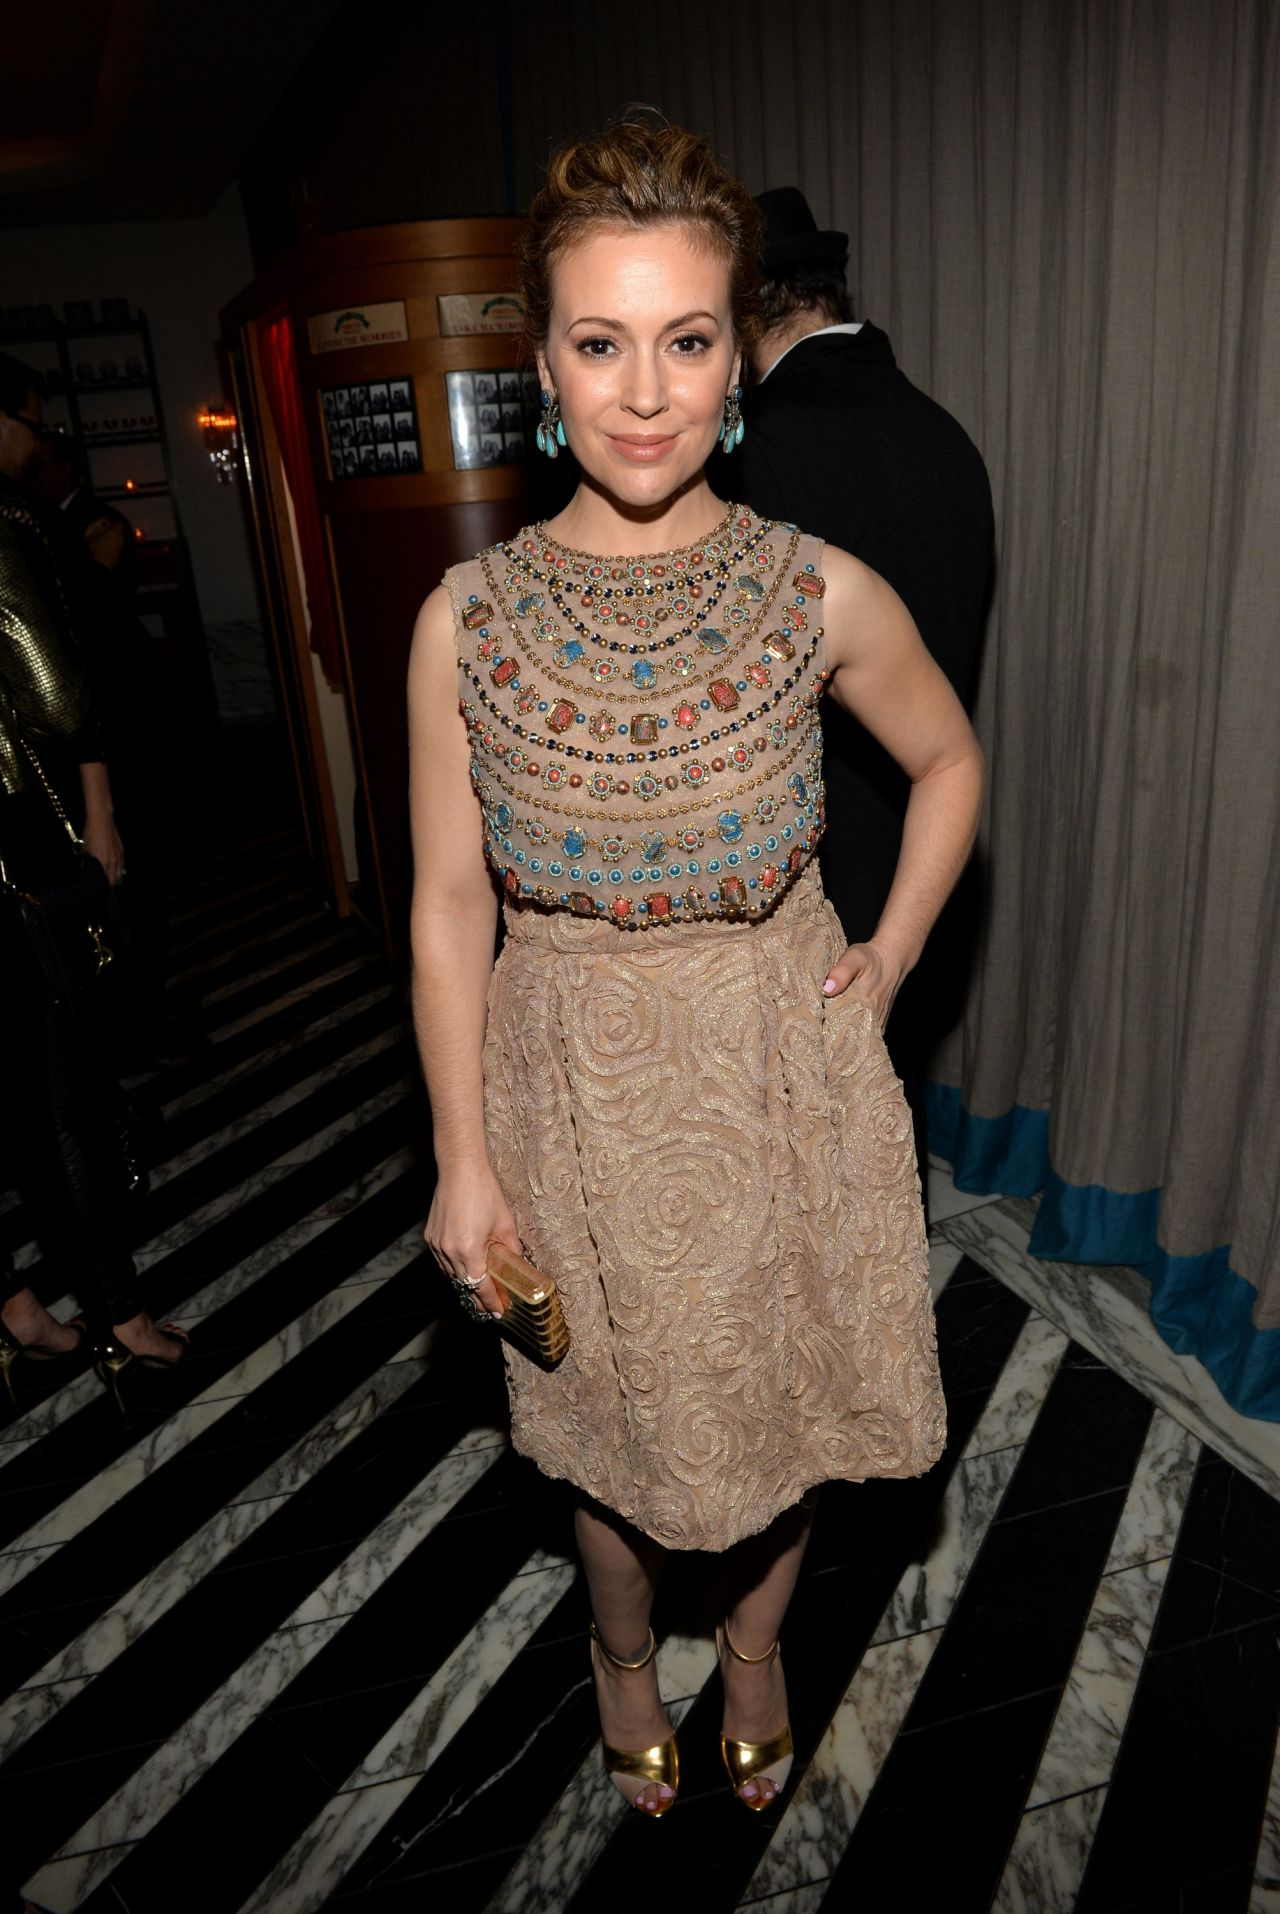 Alyssa Milano with a weight of 50 kg and a feet size of 6 in favorite outfit & clothing style